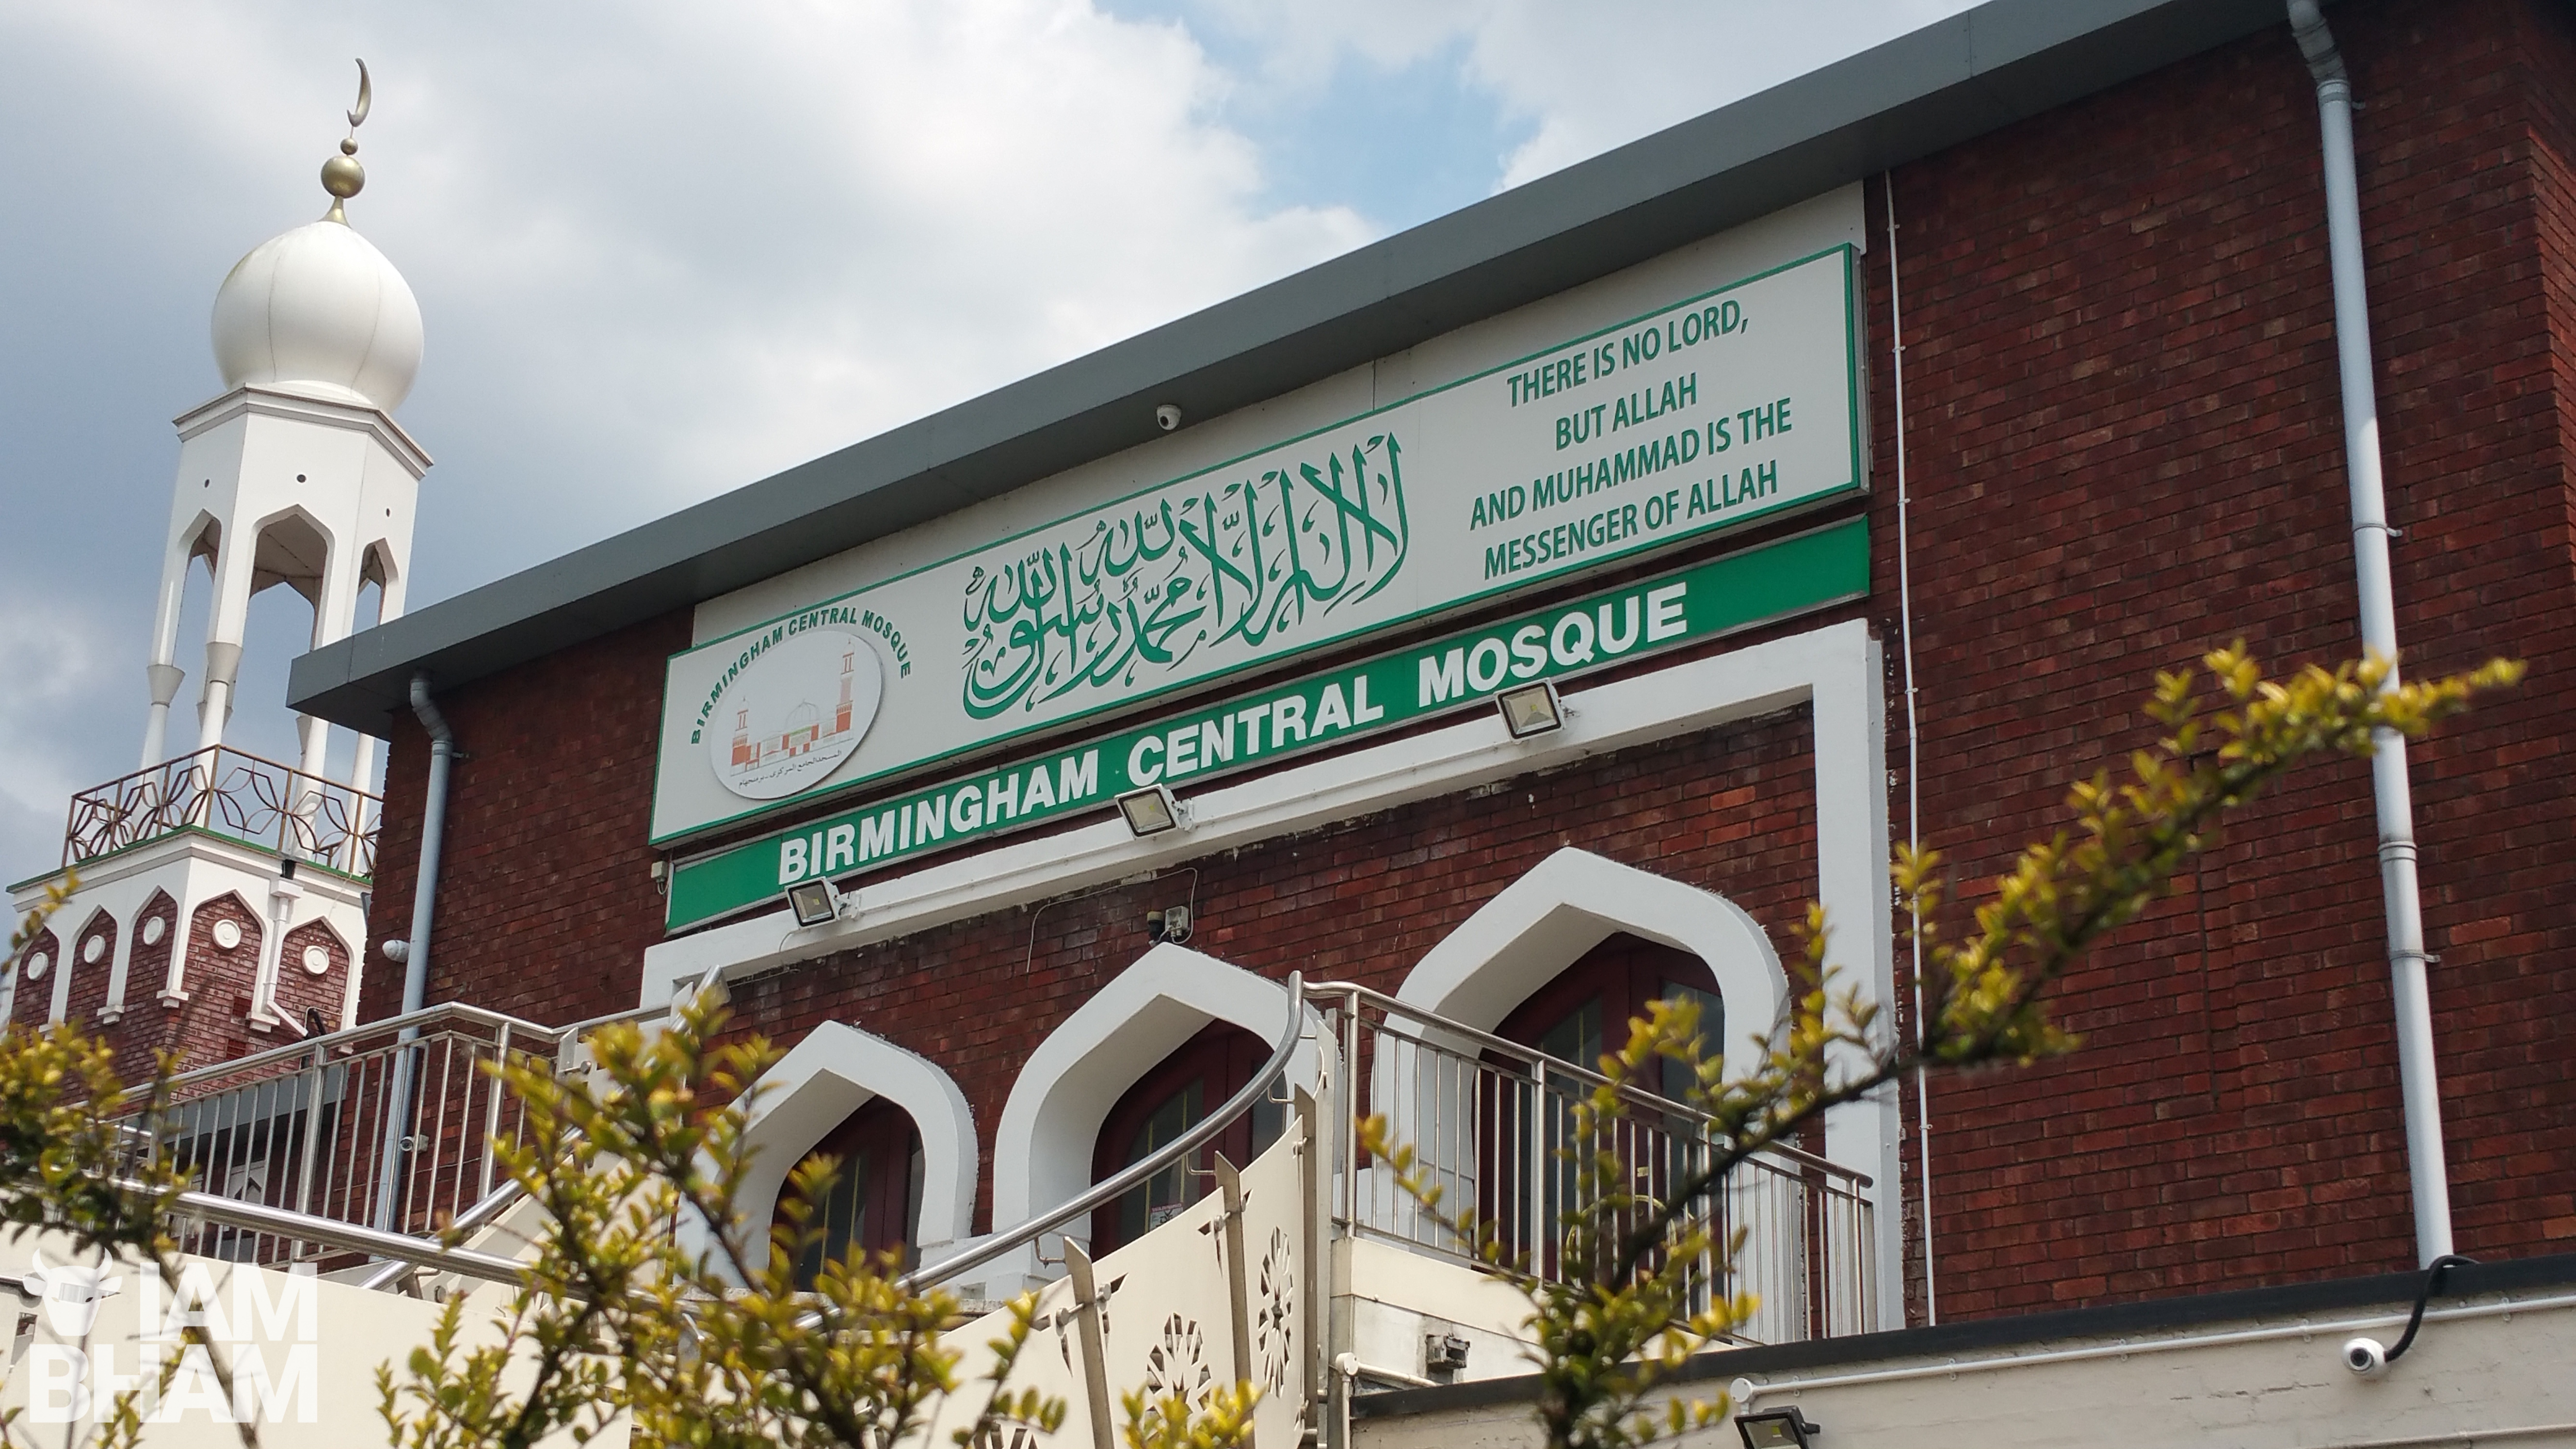 The Birmingham Central Mosque in Highgate is hosting a Soup Kitchen for ten days over the Christmas period